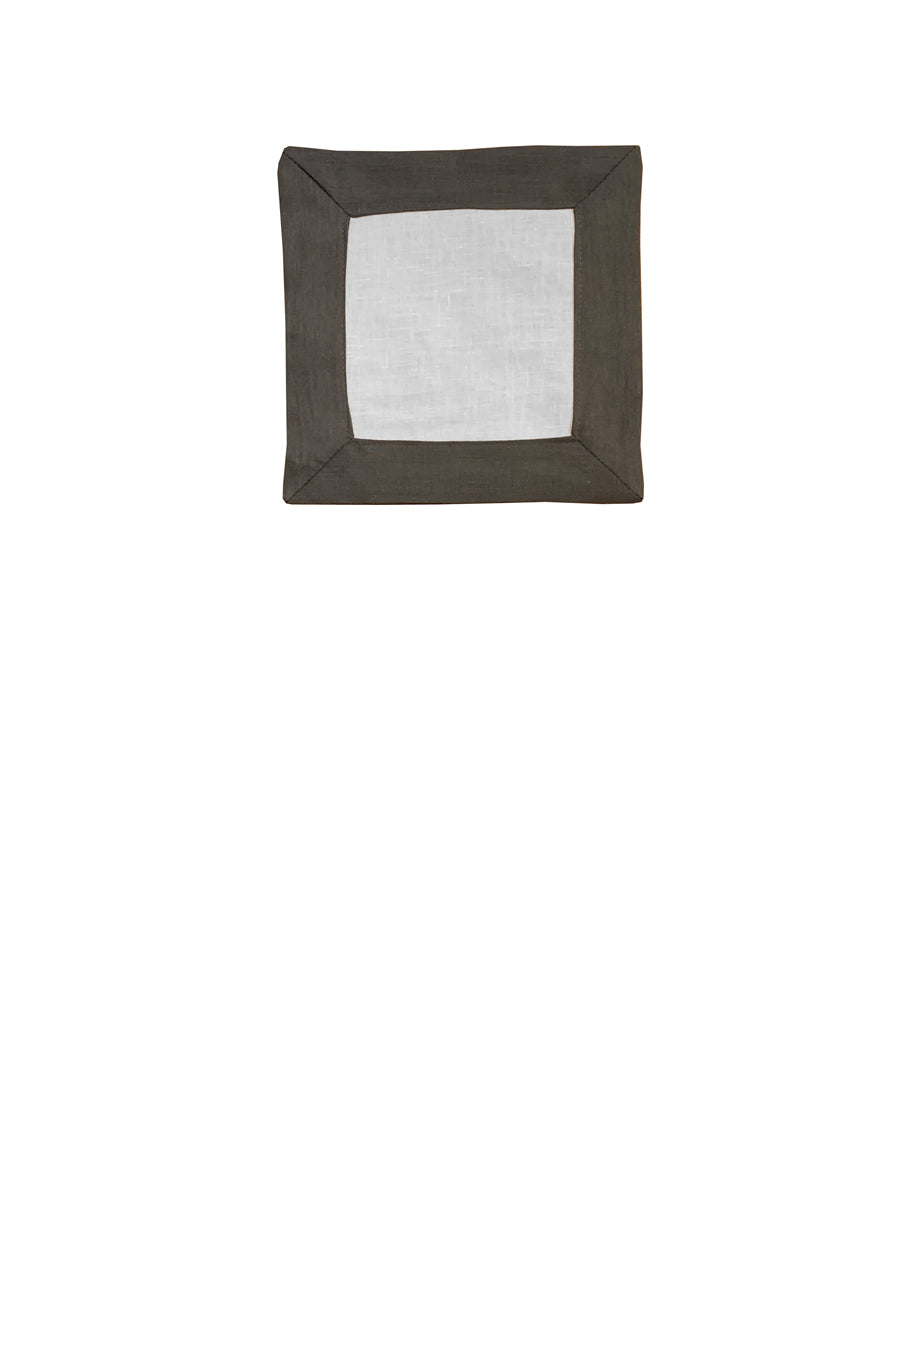 Set of 4 Contrast Border Cocktail Napkin Grey/White